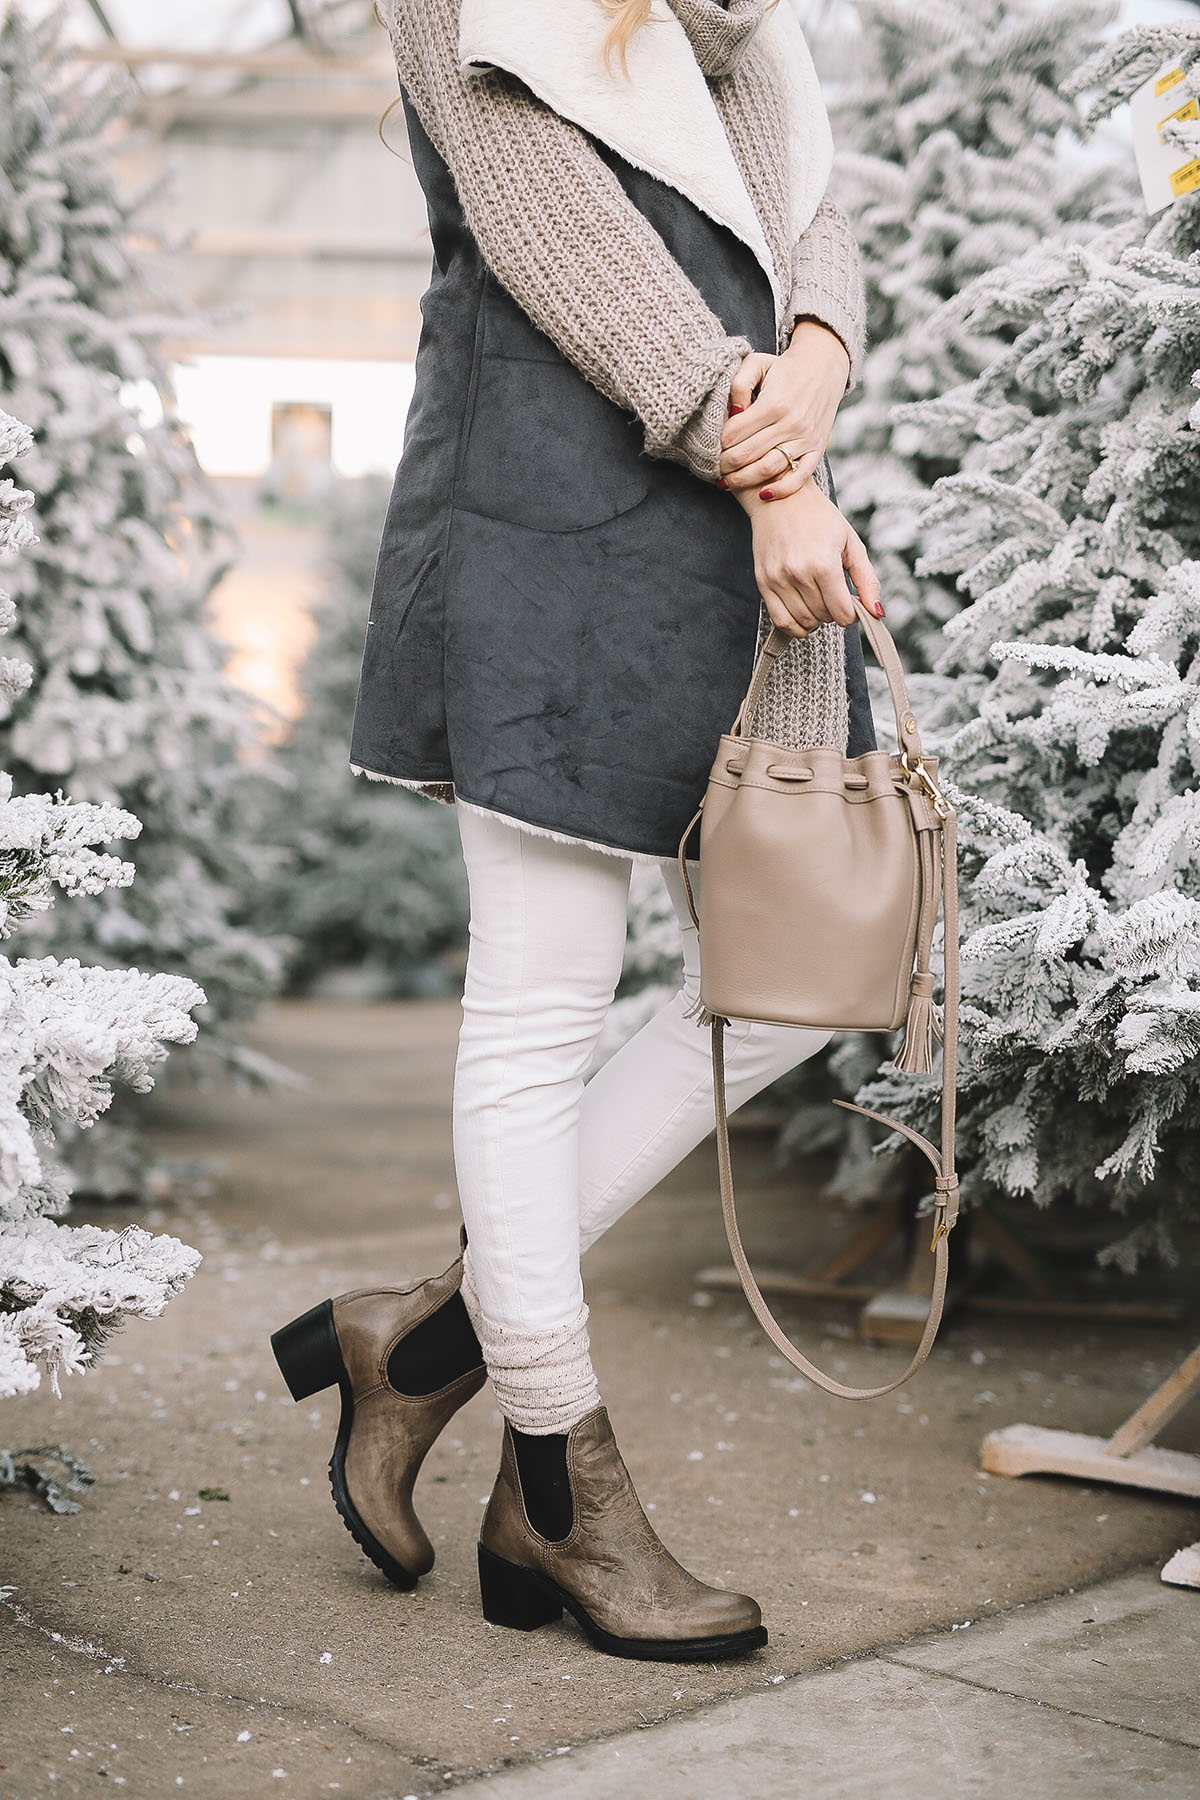 Practical Winter Boots for Casual Outfits | Frye Winter Boots